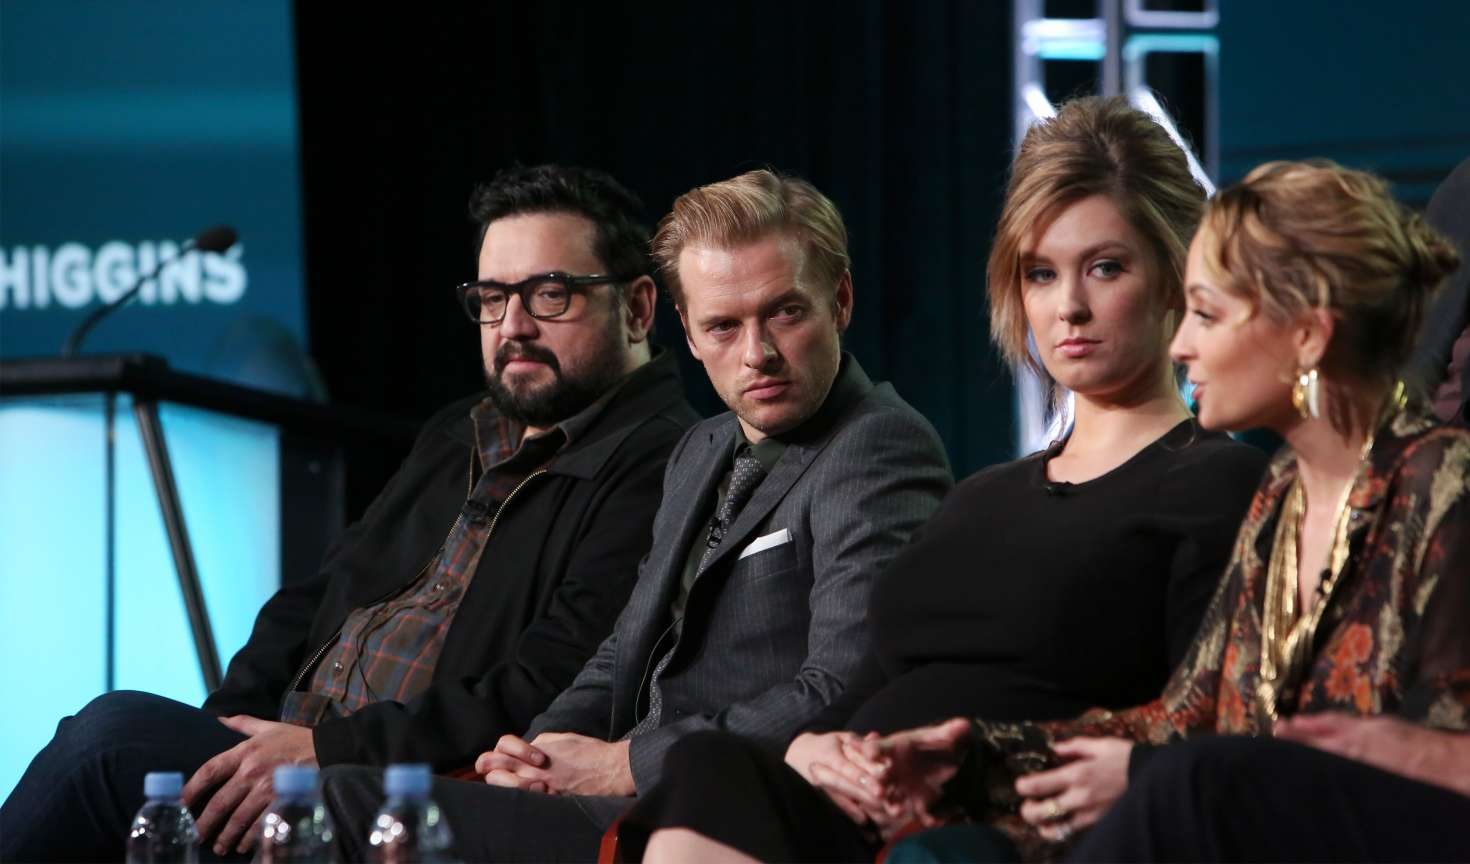 Briga Heelan 2017 : Briga Heelan: Great News Panel at 2017 TCA Winter Press Tour -05